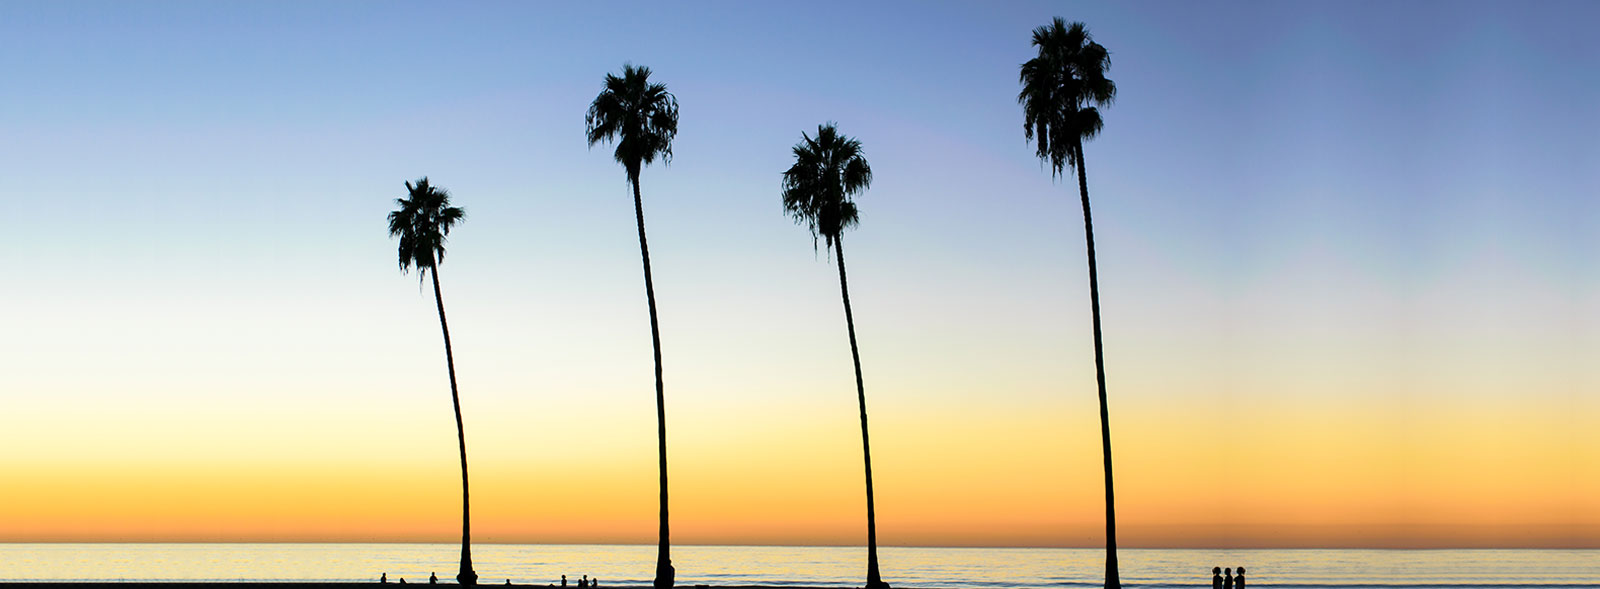 Four palm trees blowing in the breeze in front of the La Jolla Shores beach and ocean with a golden sunset in the background